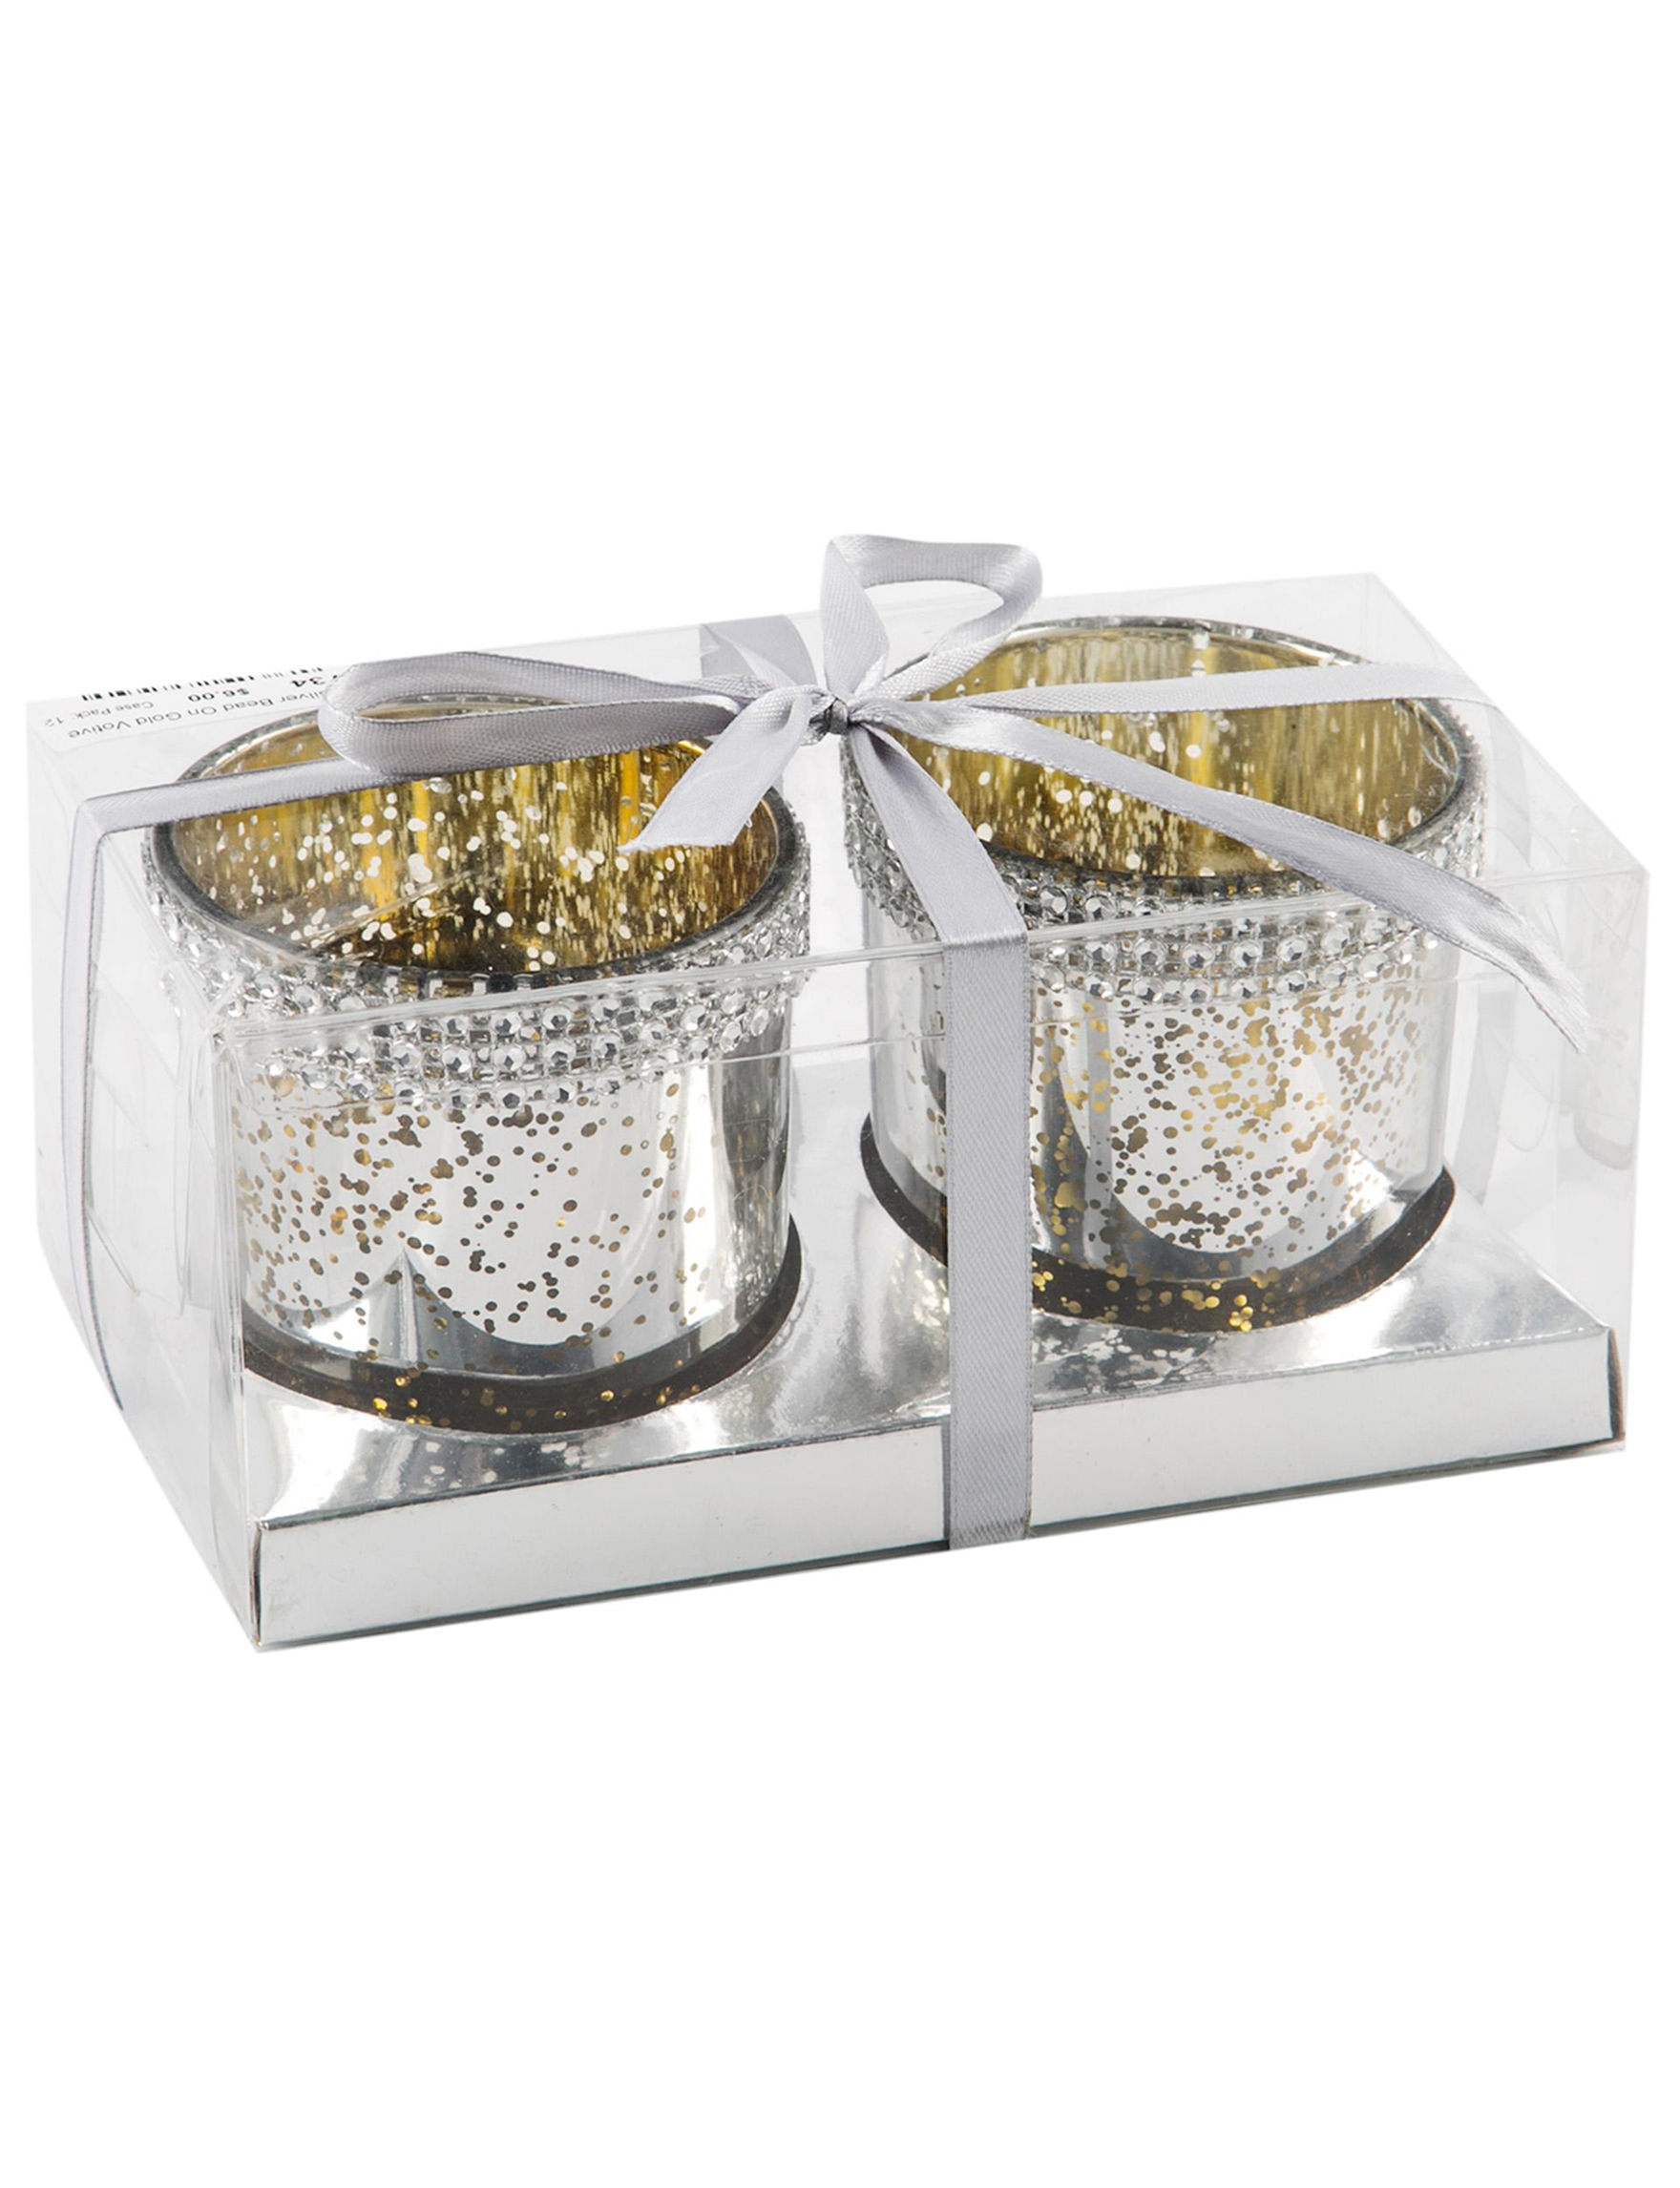 Home Essentials Silver / Gold Decorative Objects Candles & Diffusers Home Accents